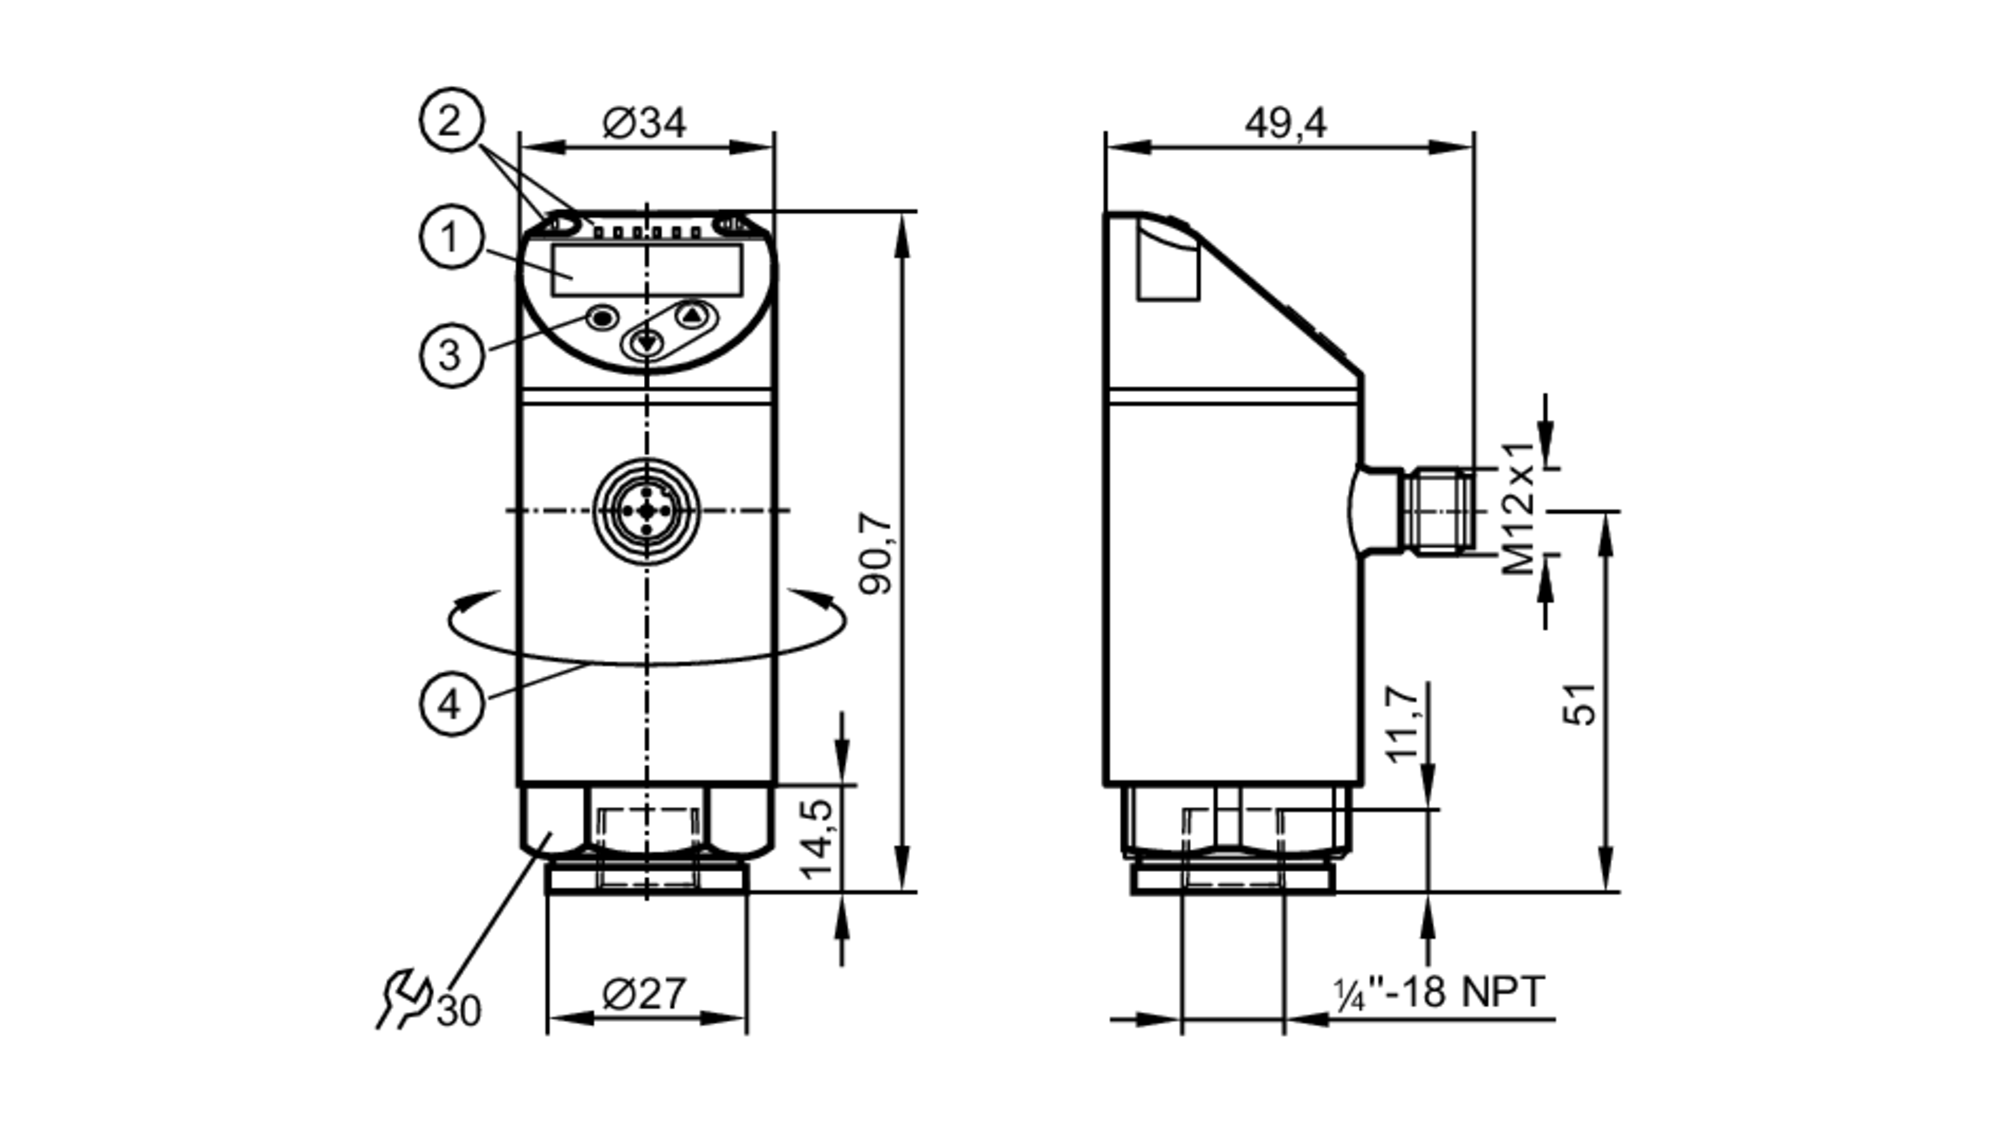 pn2298 - pressure sensor with display